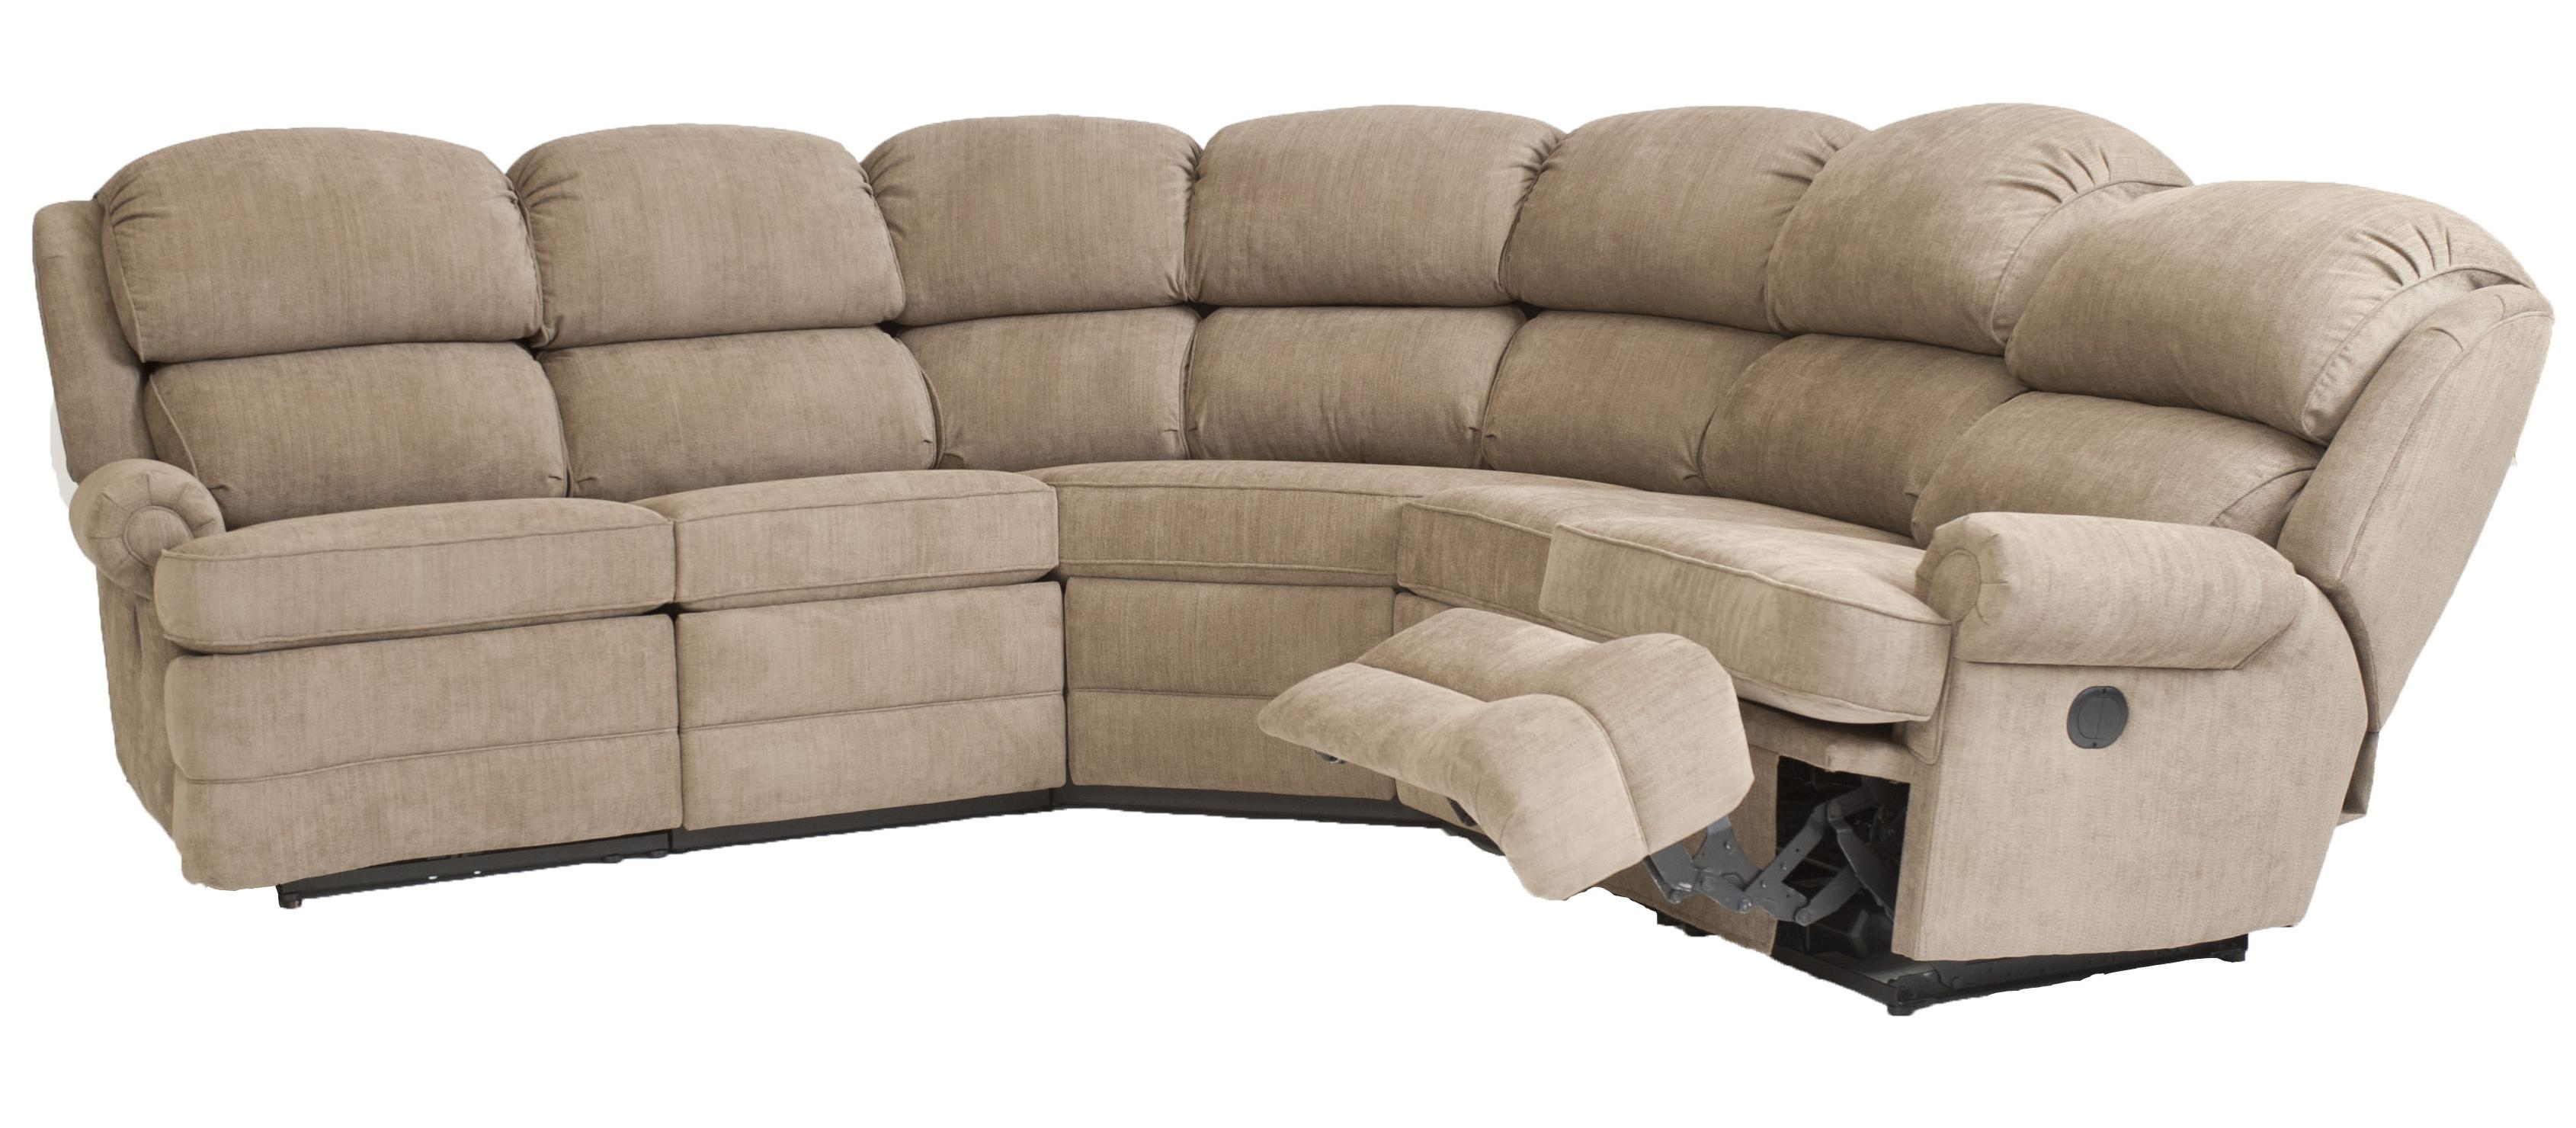 Smith Brothers Smith Brothers Transitional 5 Piece Reclining Sectional Sofa With Small Rolled